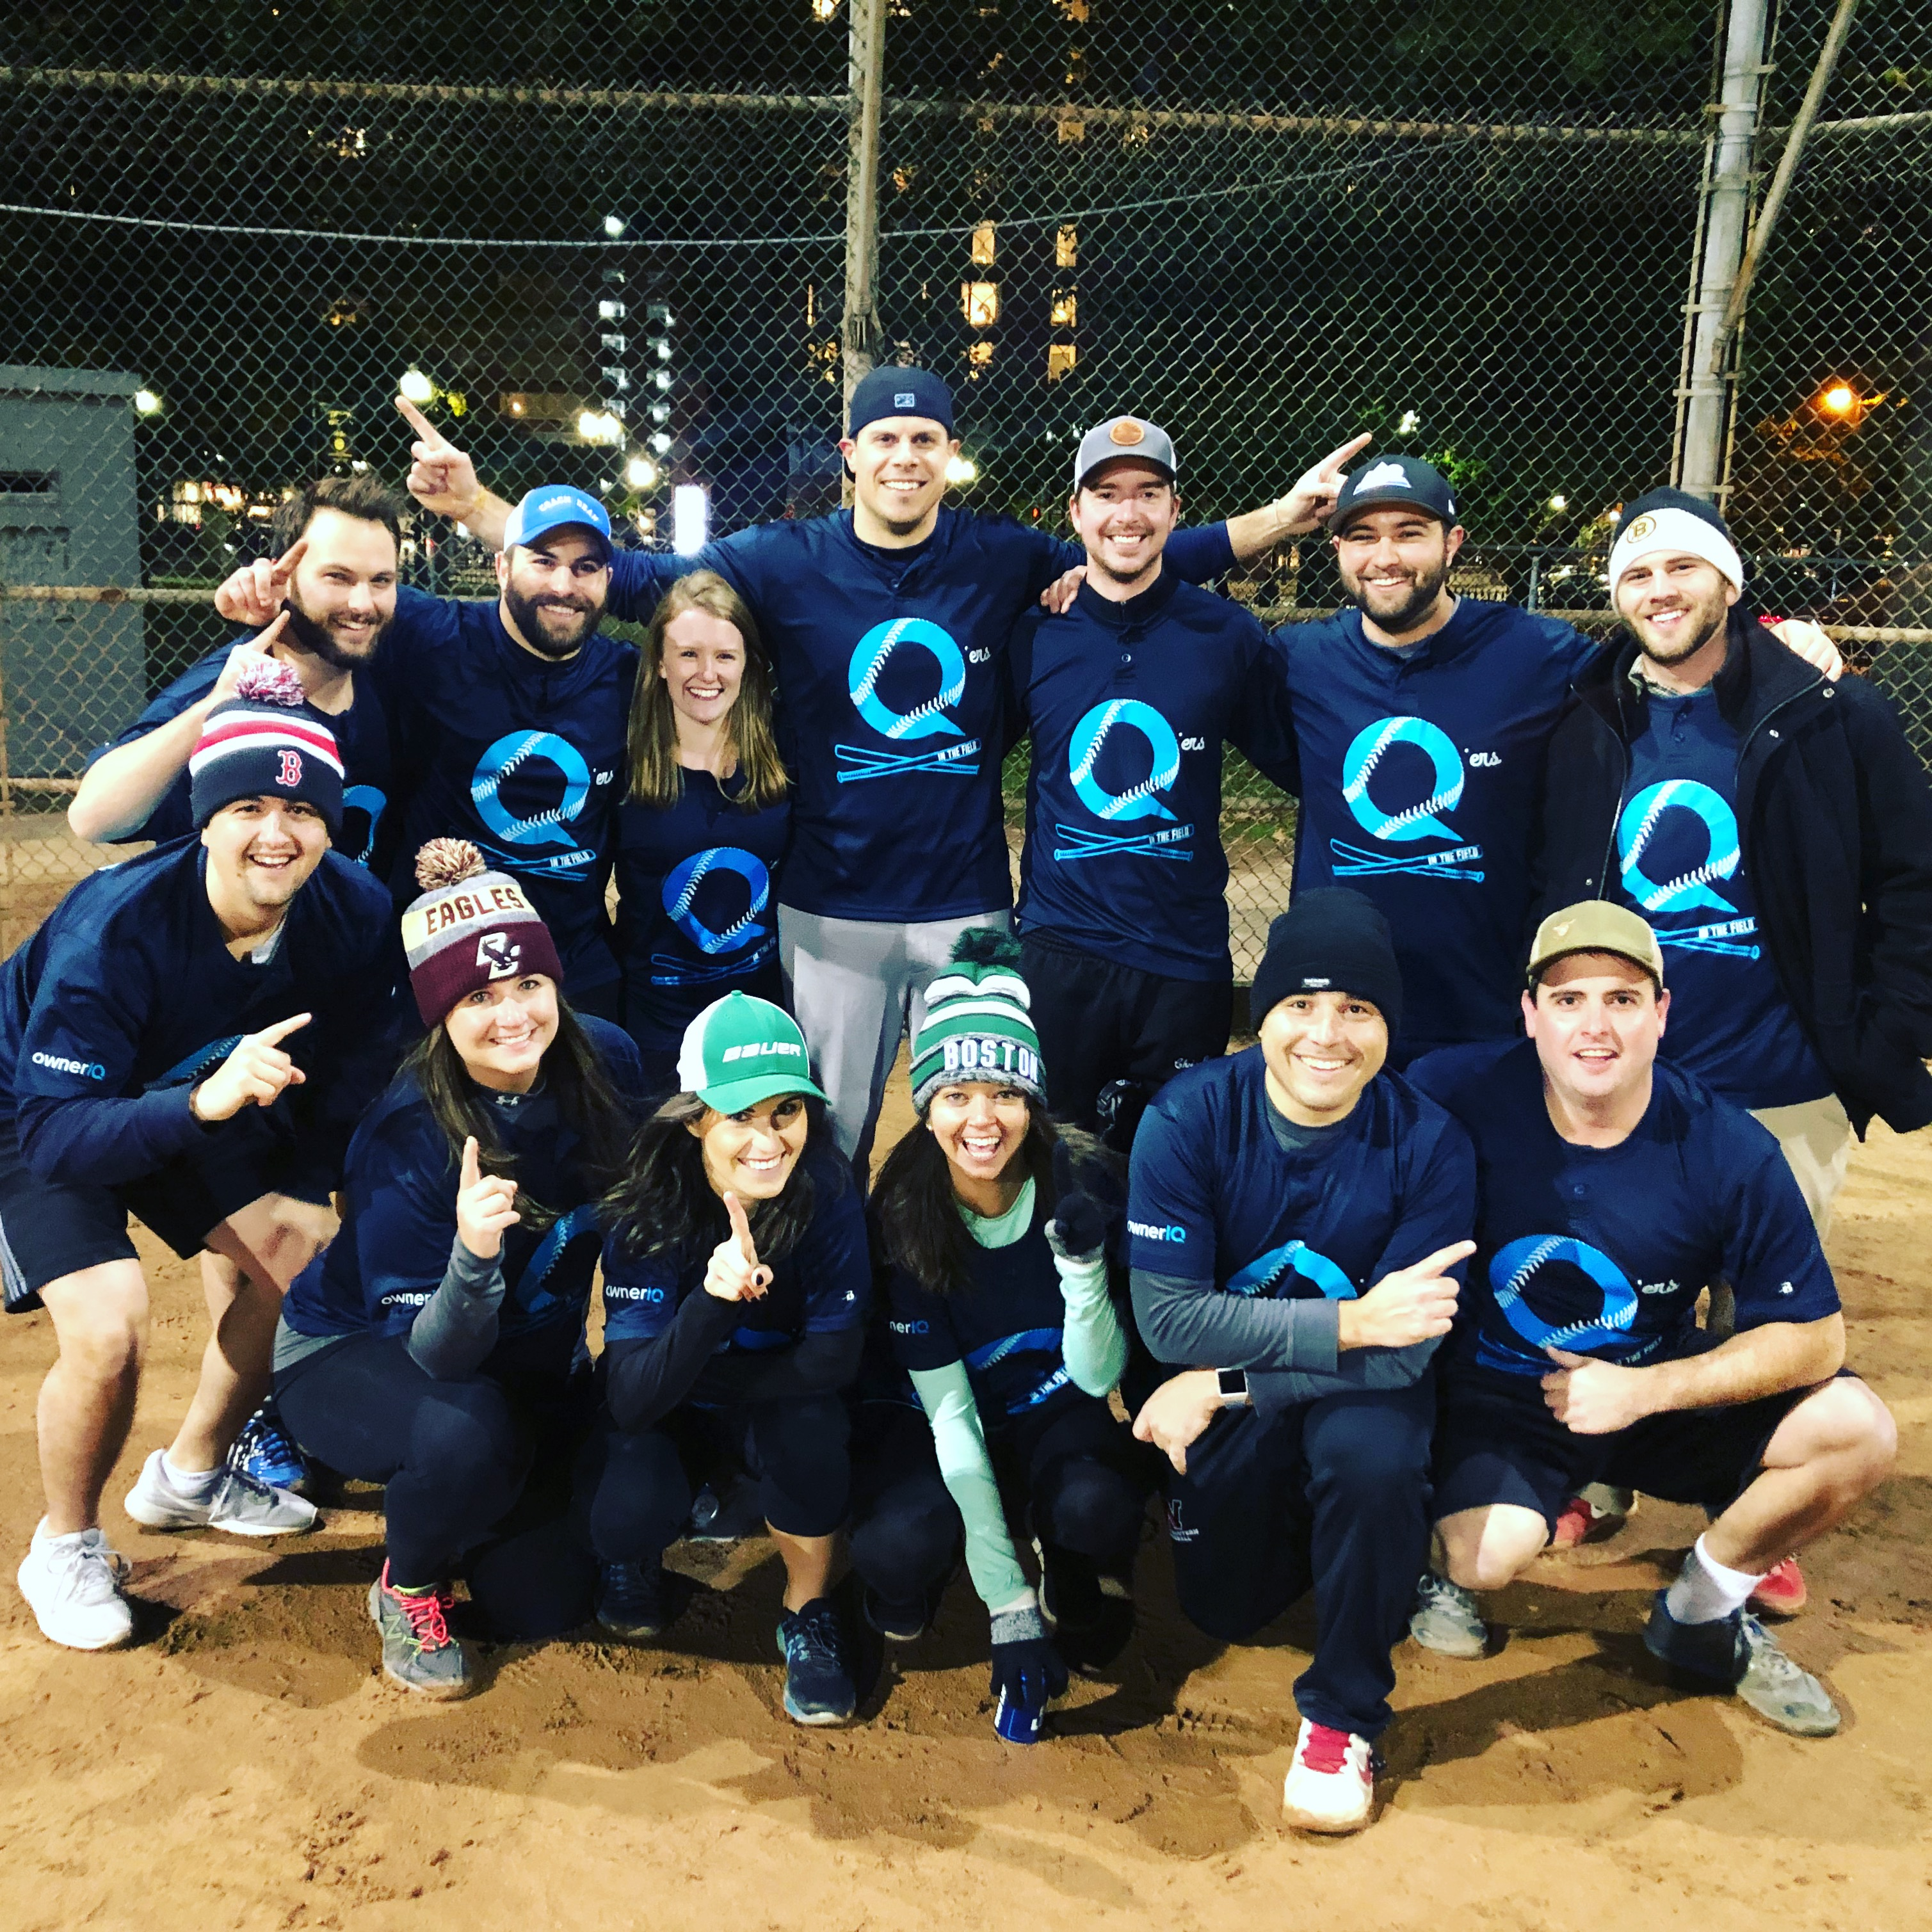 ownerIQ Wicked Bissa Softball Champions